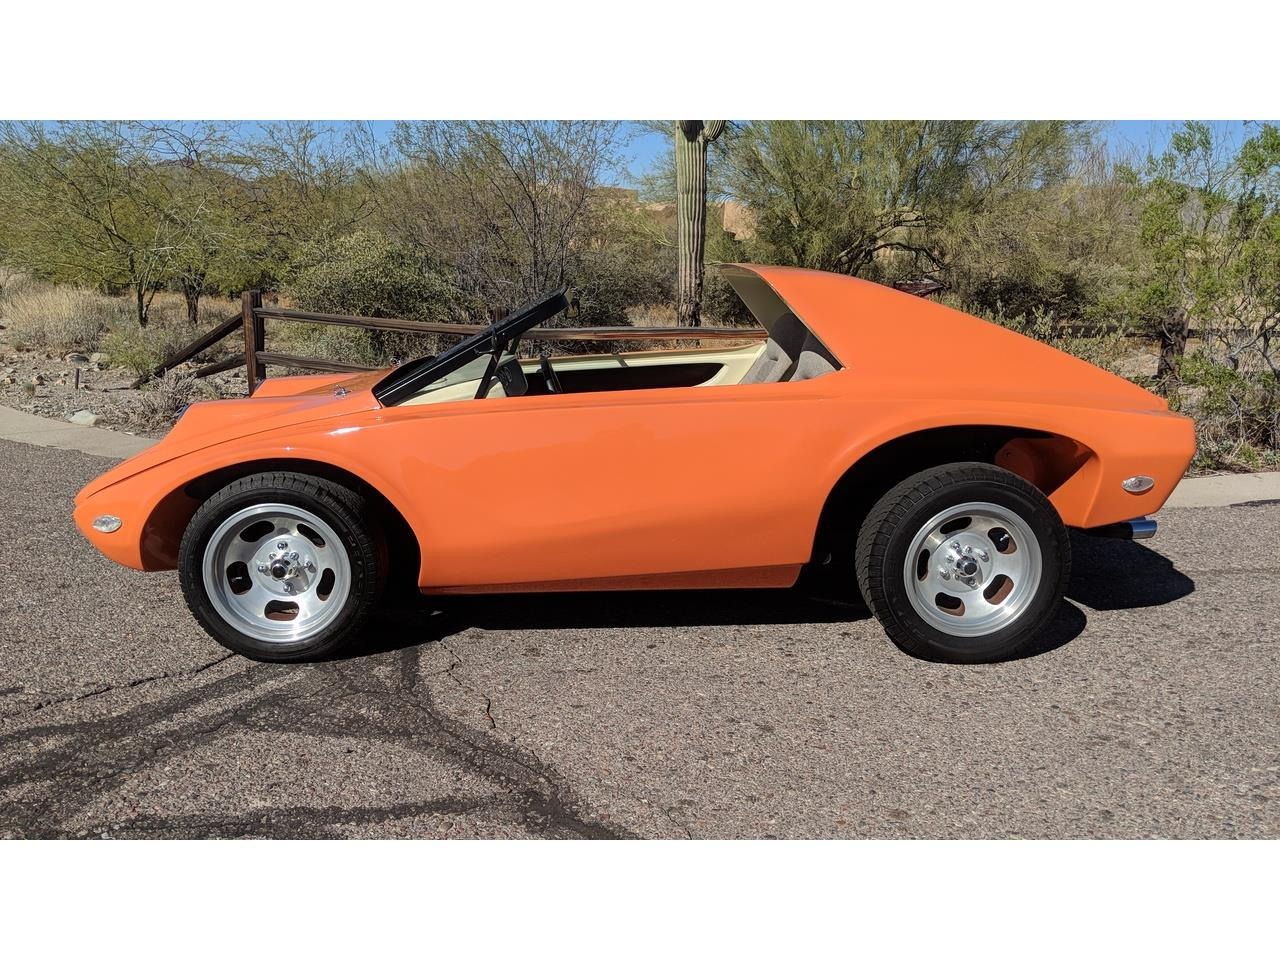 Large Picture of Classic 1970 Volkswagen Baja Bug located in North Phoenix Arizona - $11,900.00 Offered by a Private Seller - MXZ5